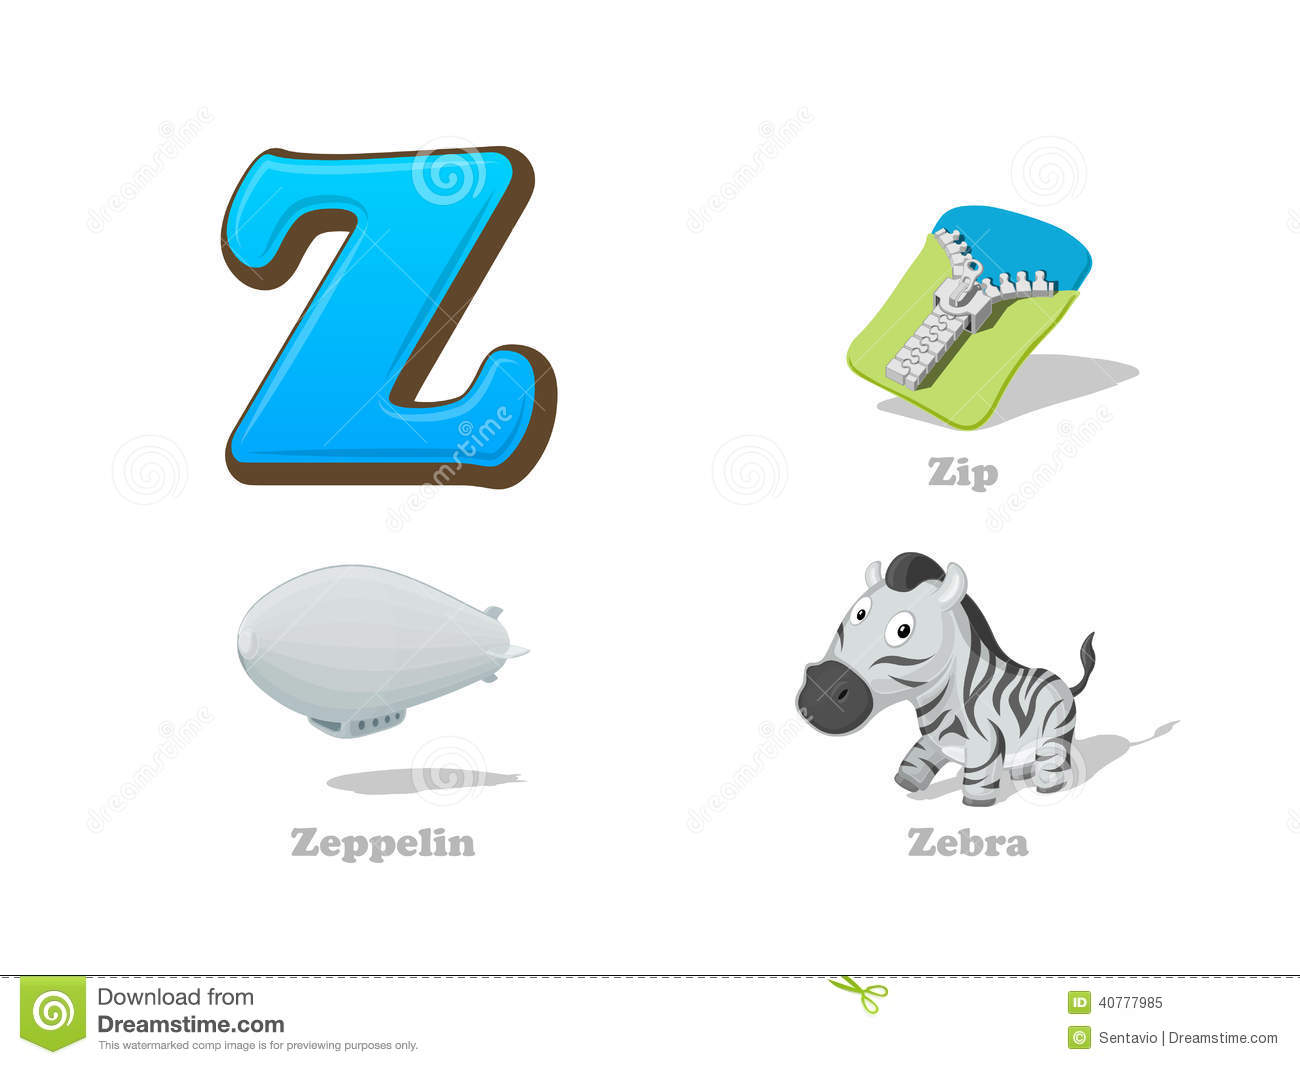 ABC Letter Z Funny Kid Icons Set: Zebra, Zip, Zeppelin